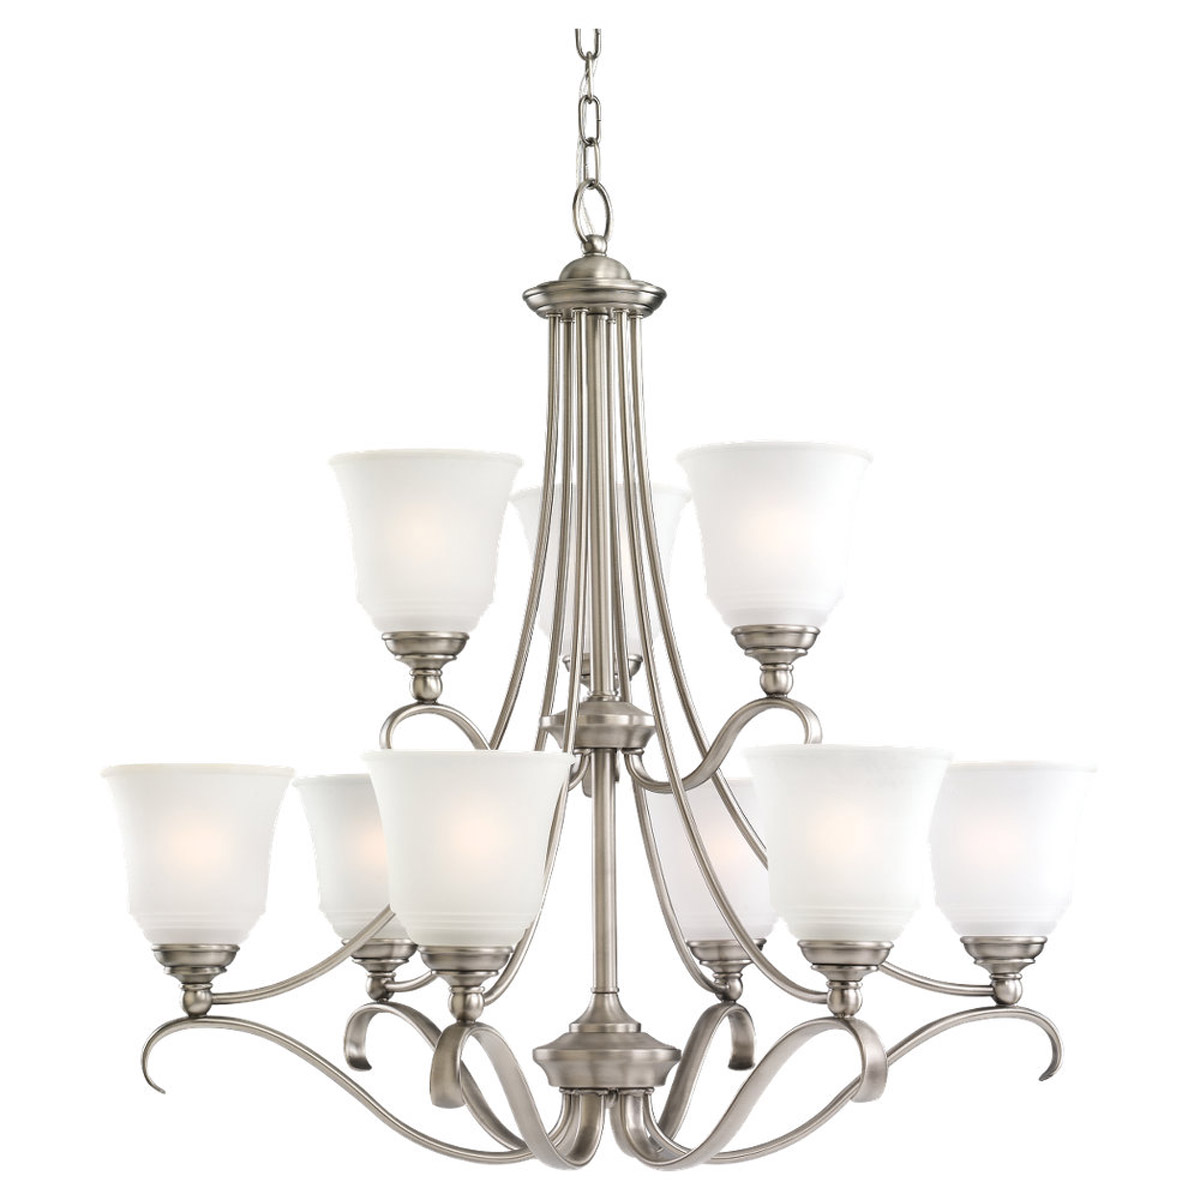 Sea Gull Lighting Parkview 9 Light Chandelier in Antique Brushed Nickel 39381BLE-965